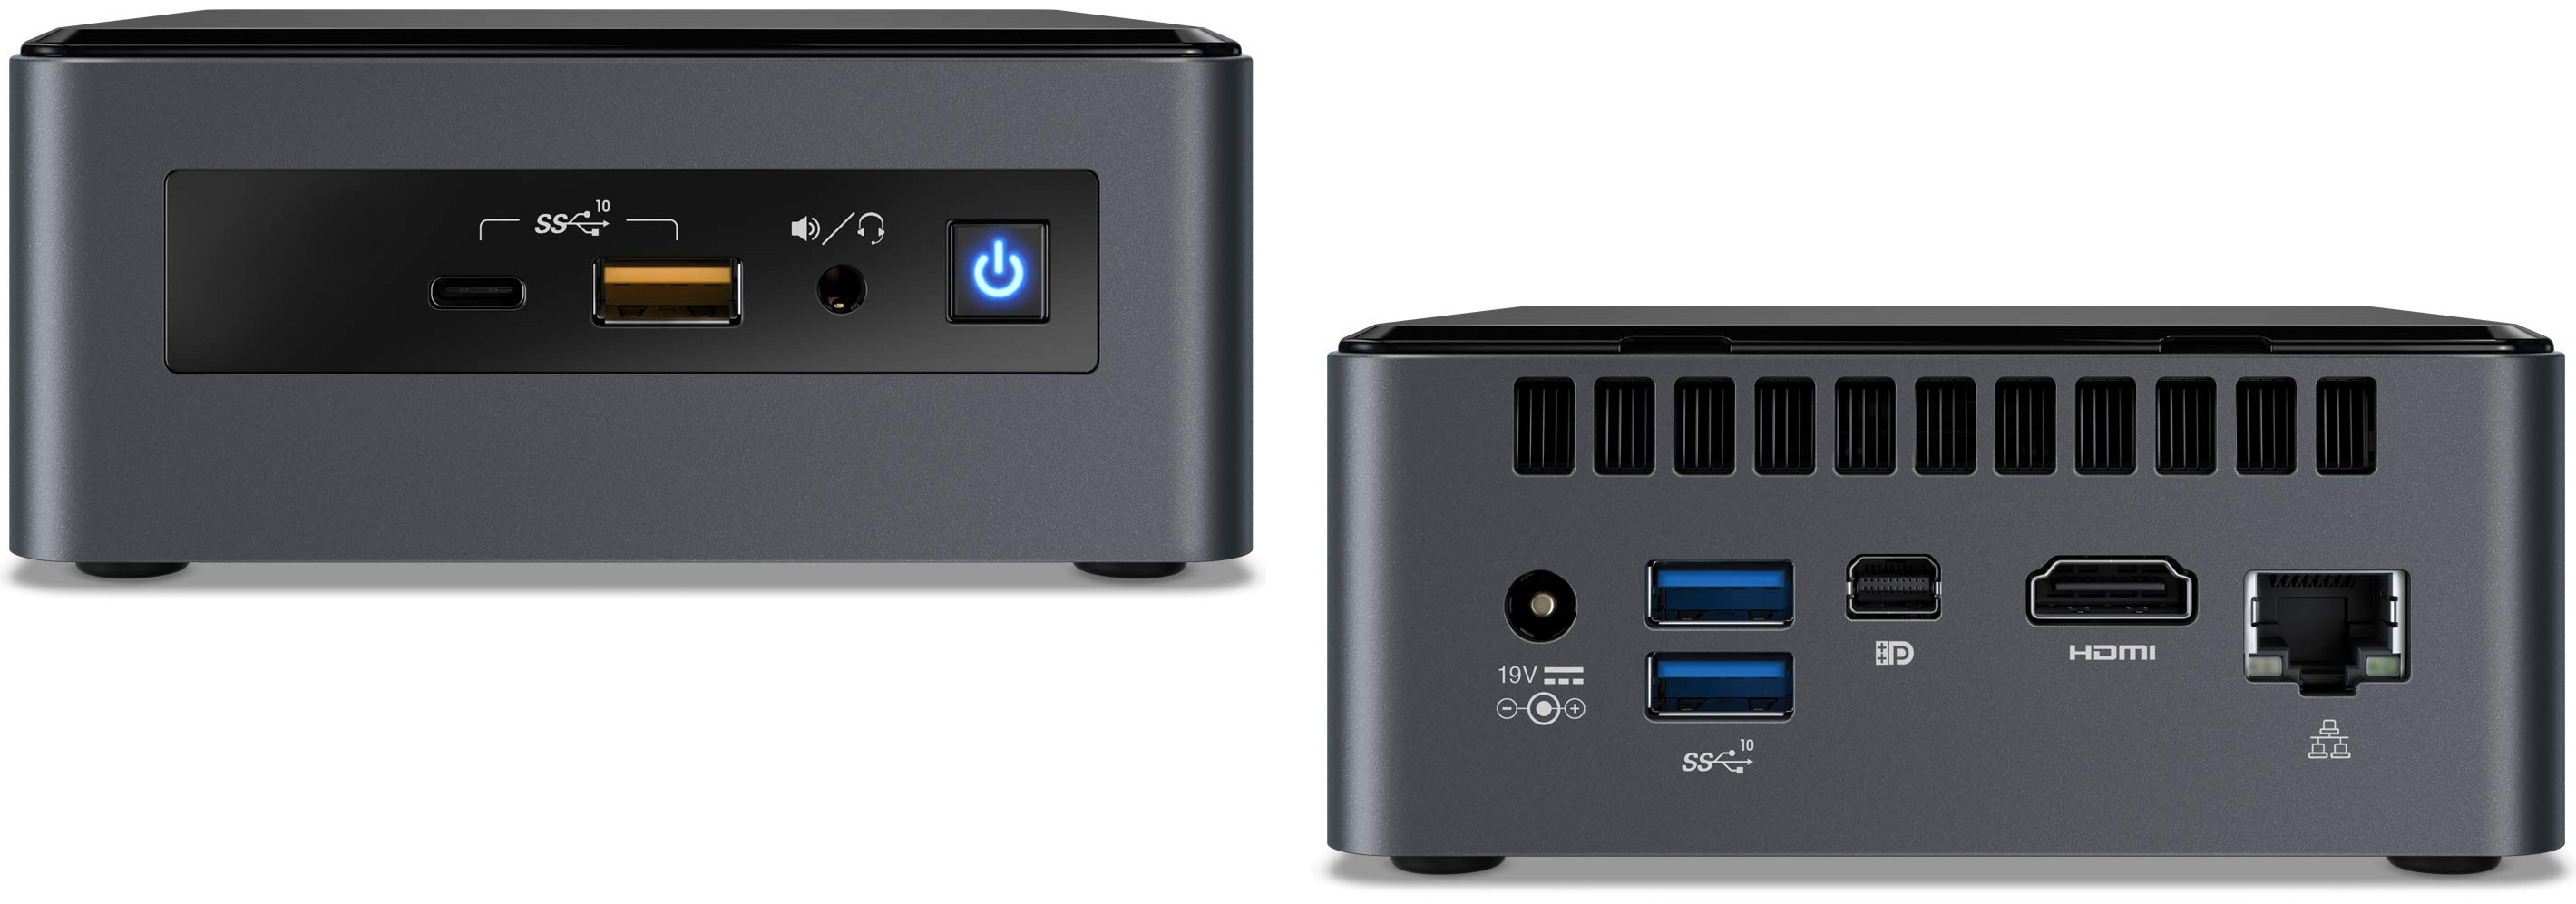 Intel's Islay Canyon Mini NUCs Available: Whiskey Lake